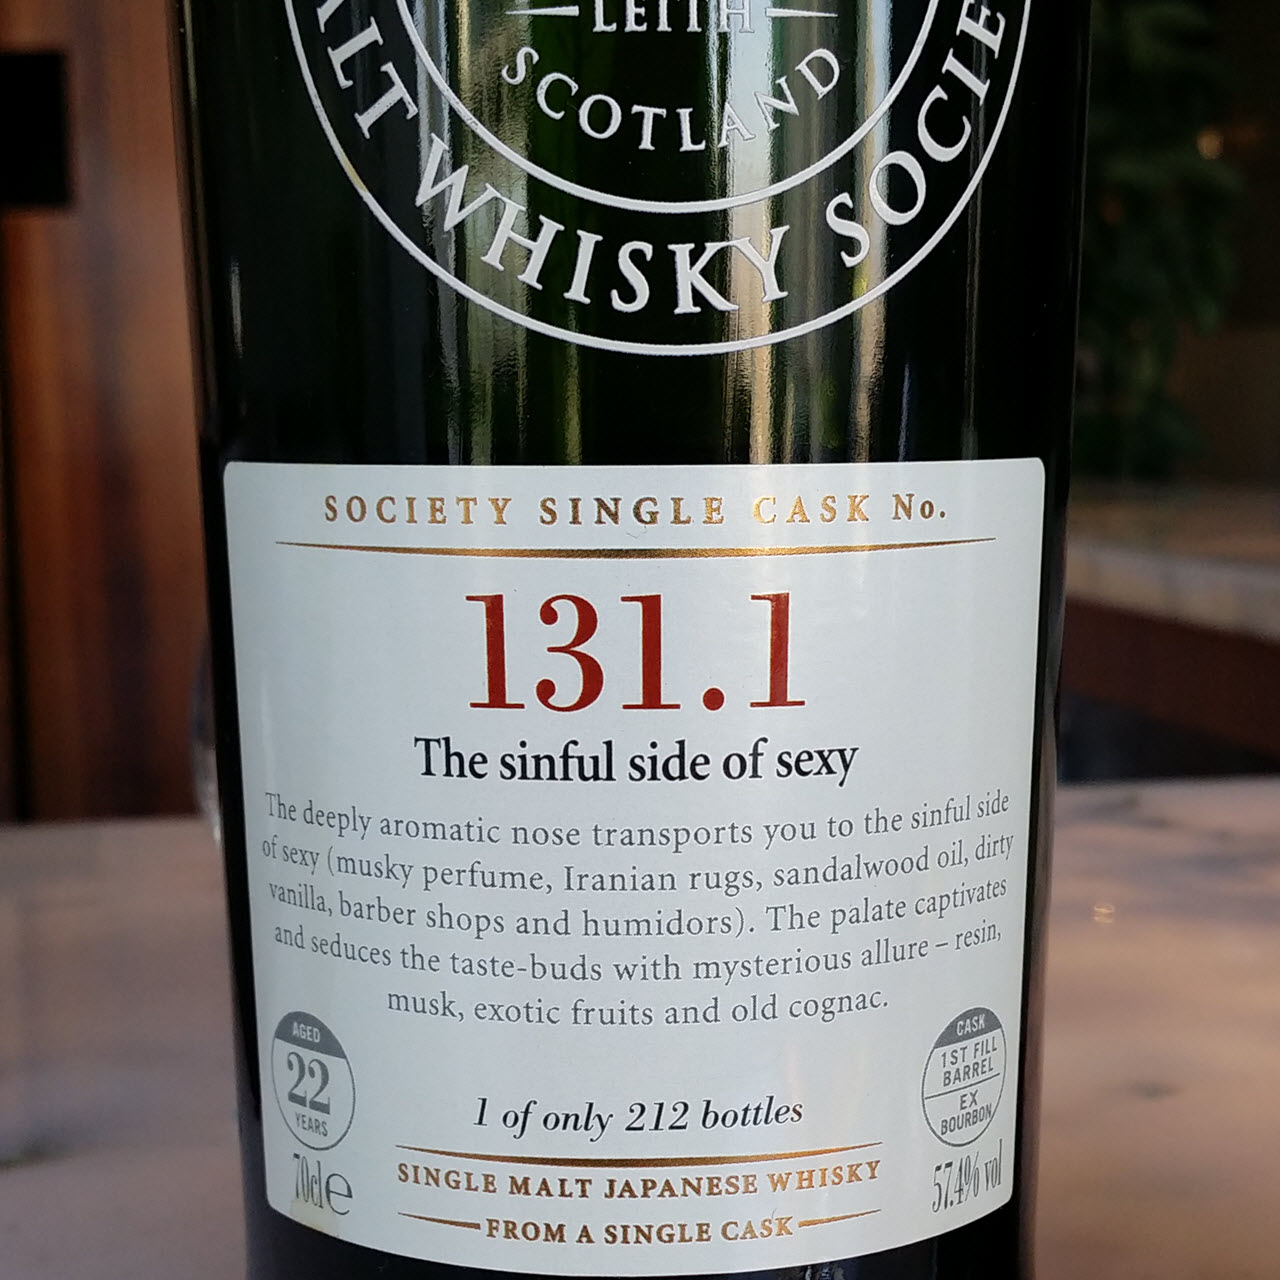 SMWS 131.1 The sinful side of sexy